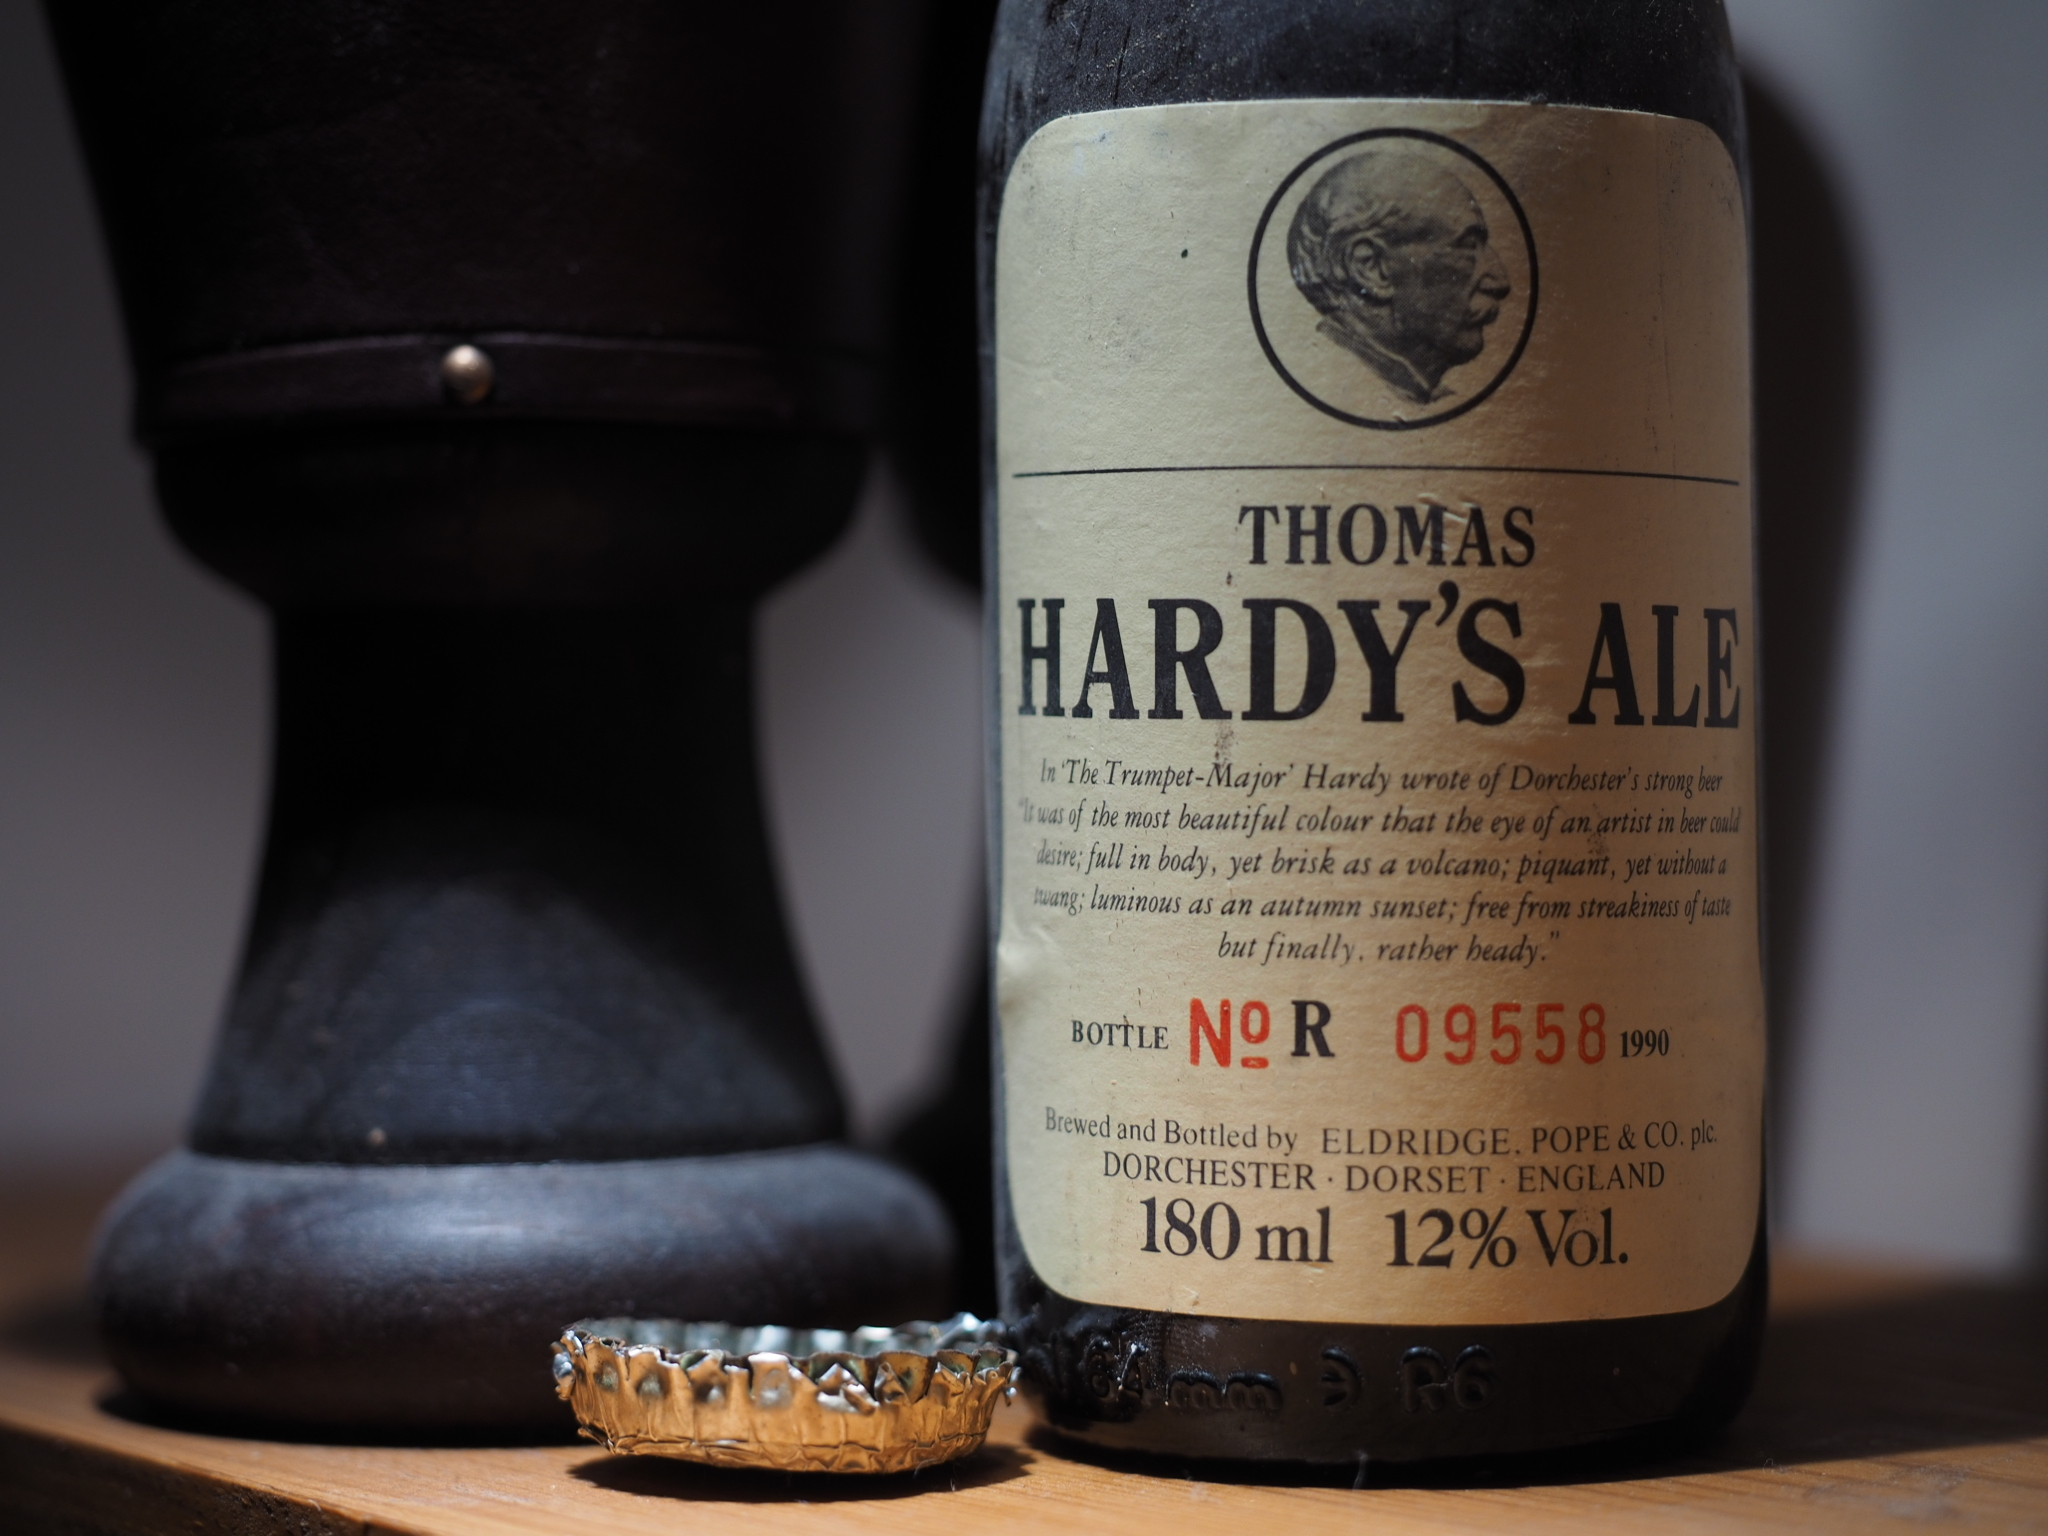 thomas hardy s ale chris routledge photo by chris routledge